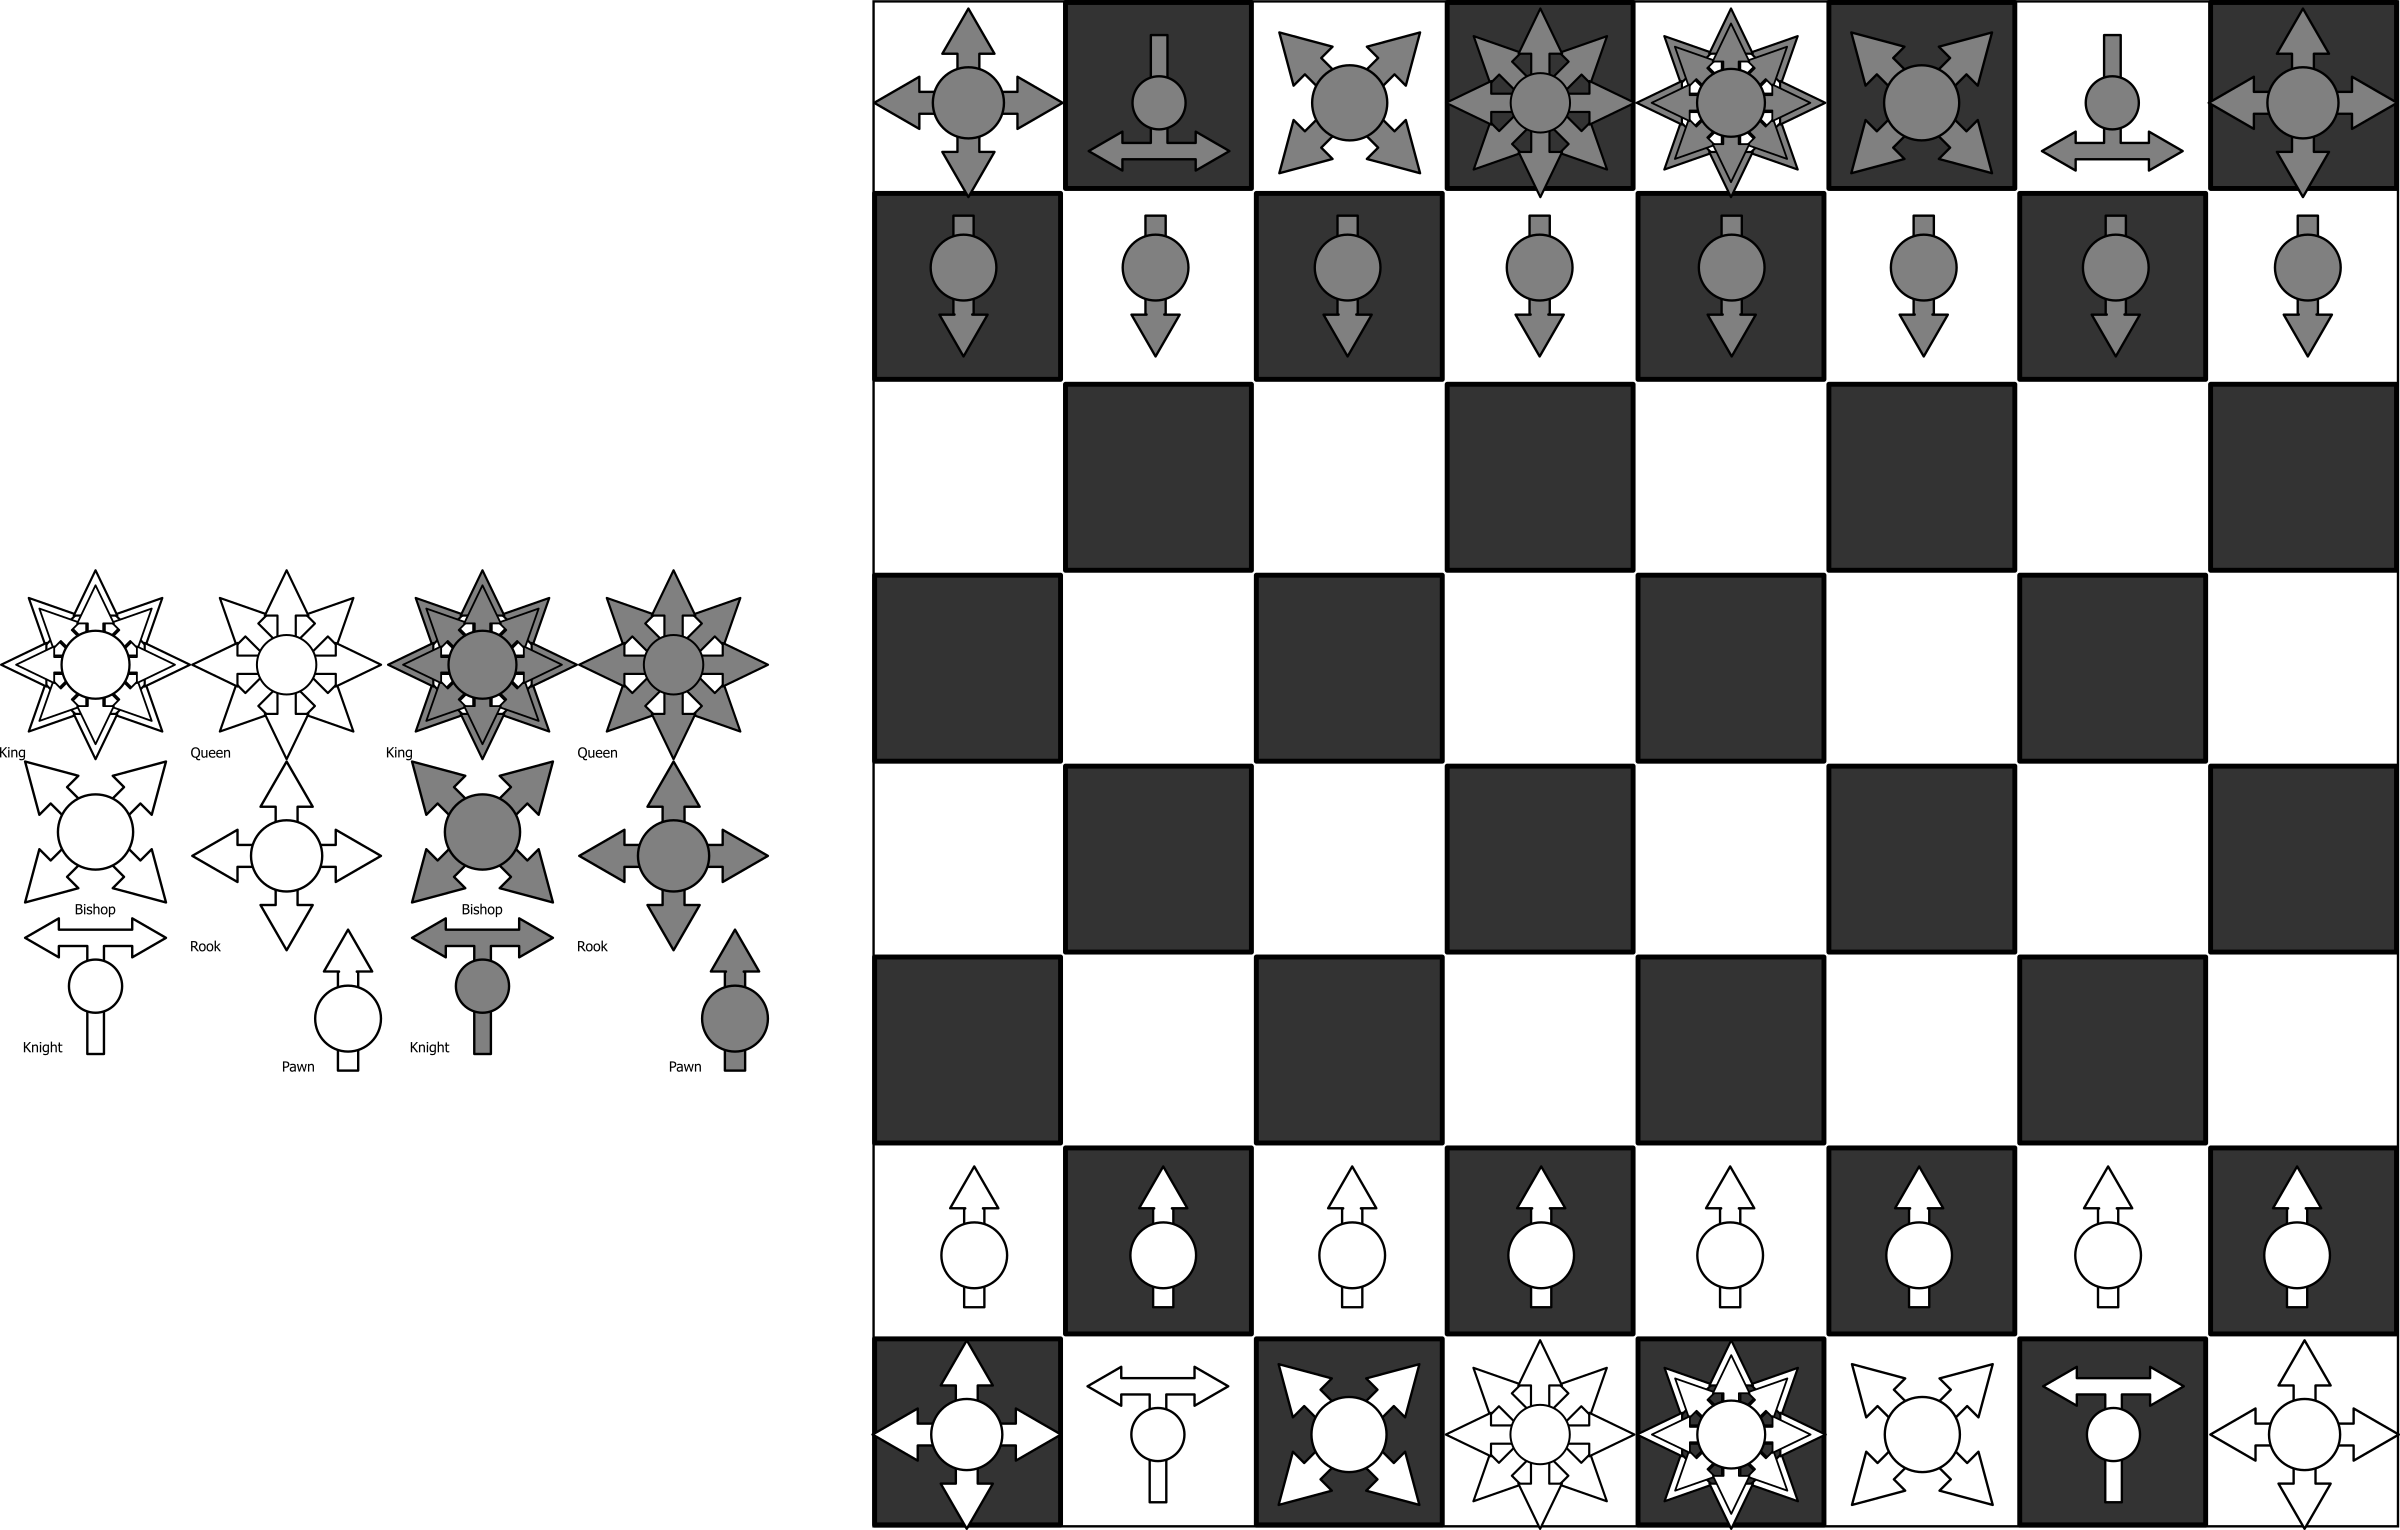 chess set design for postal chess by pjsvbfcm